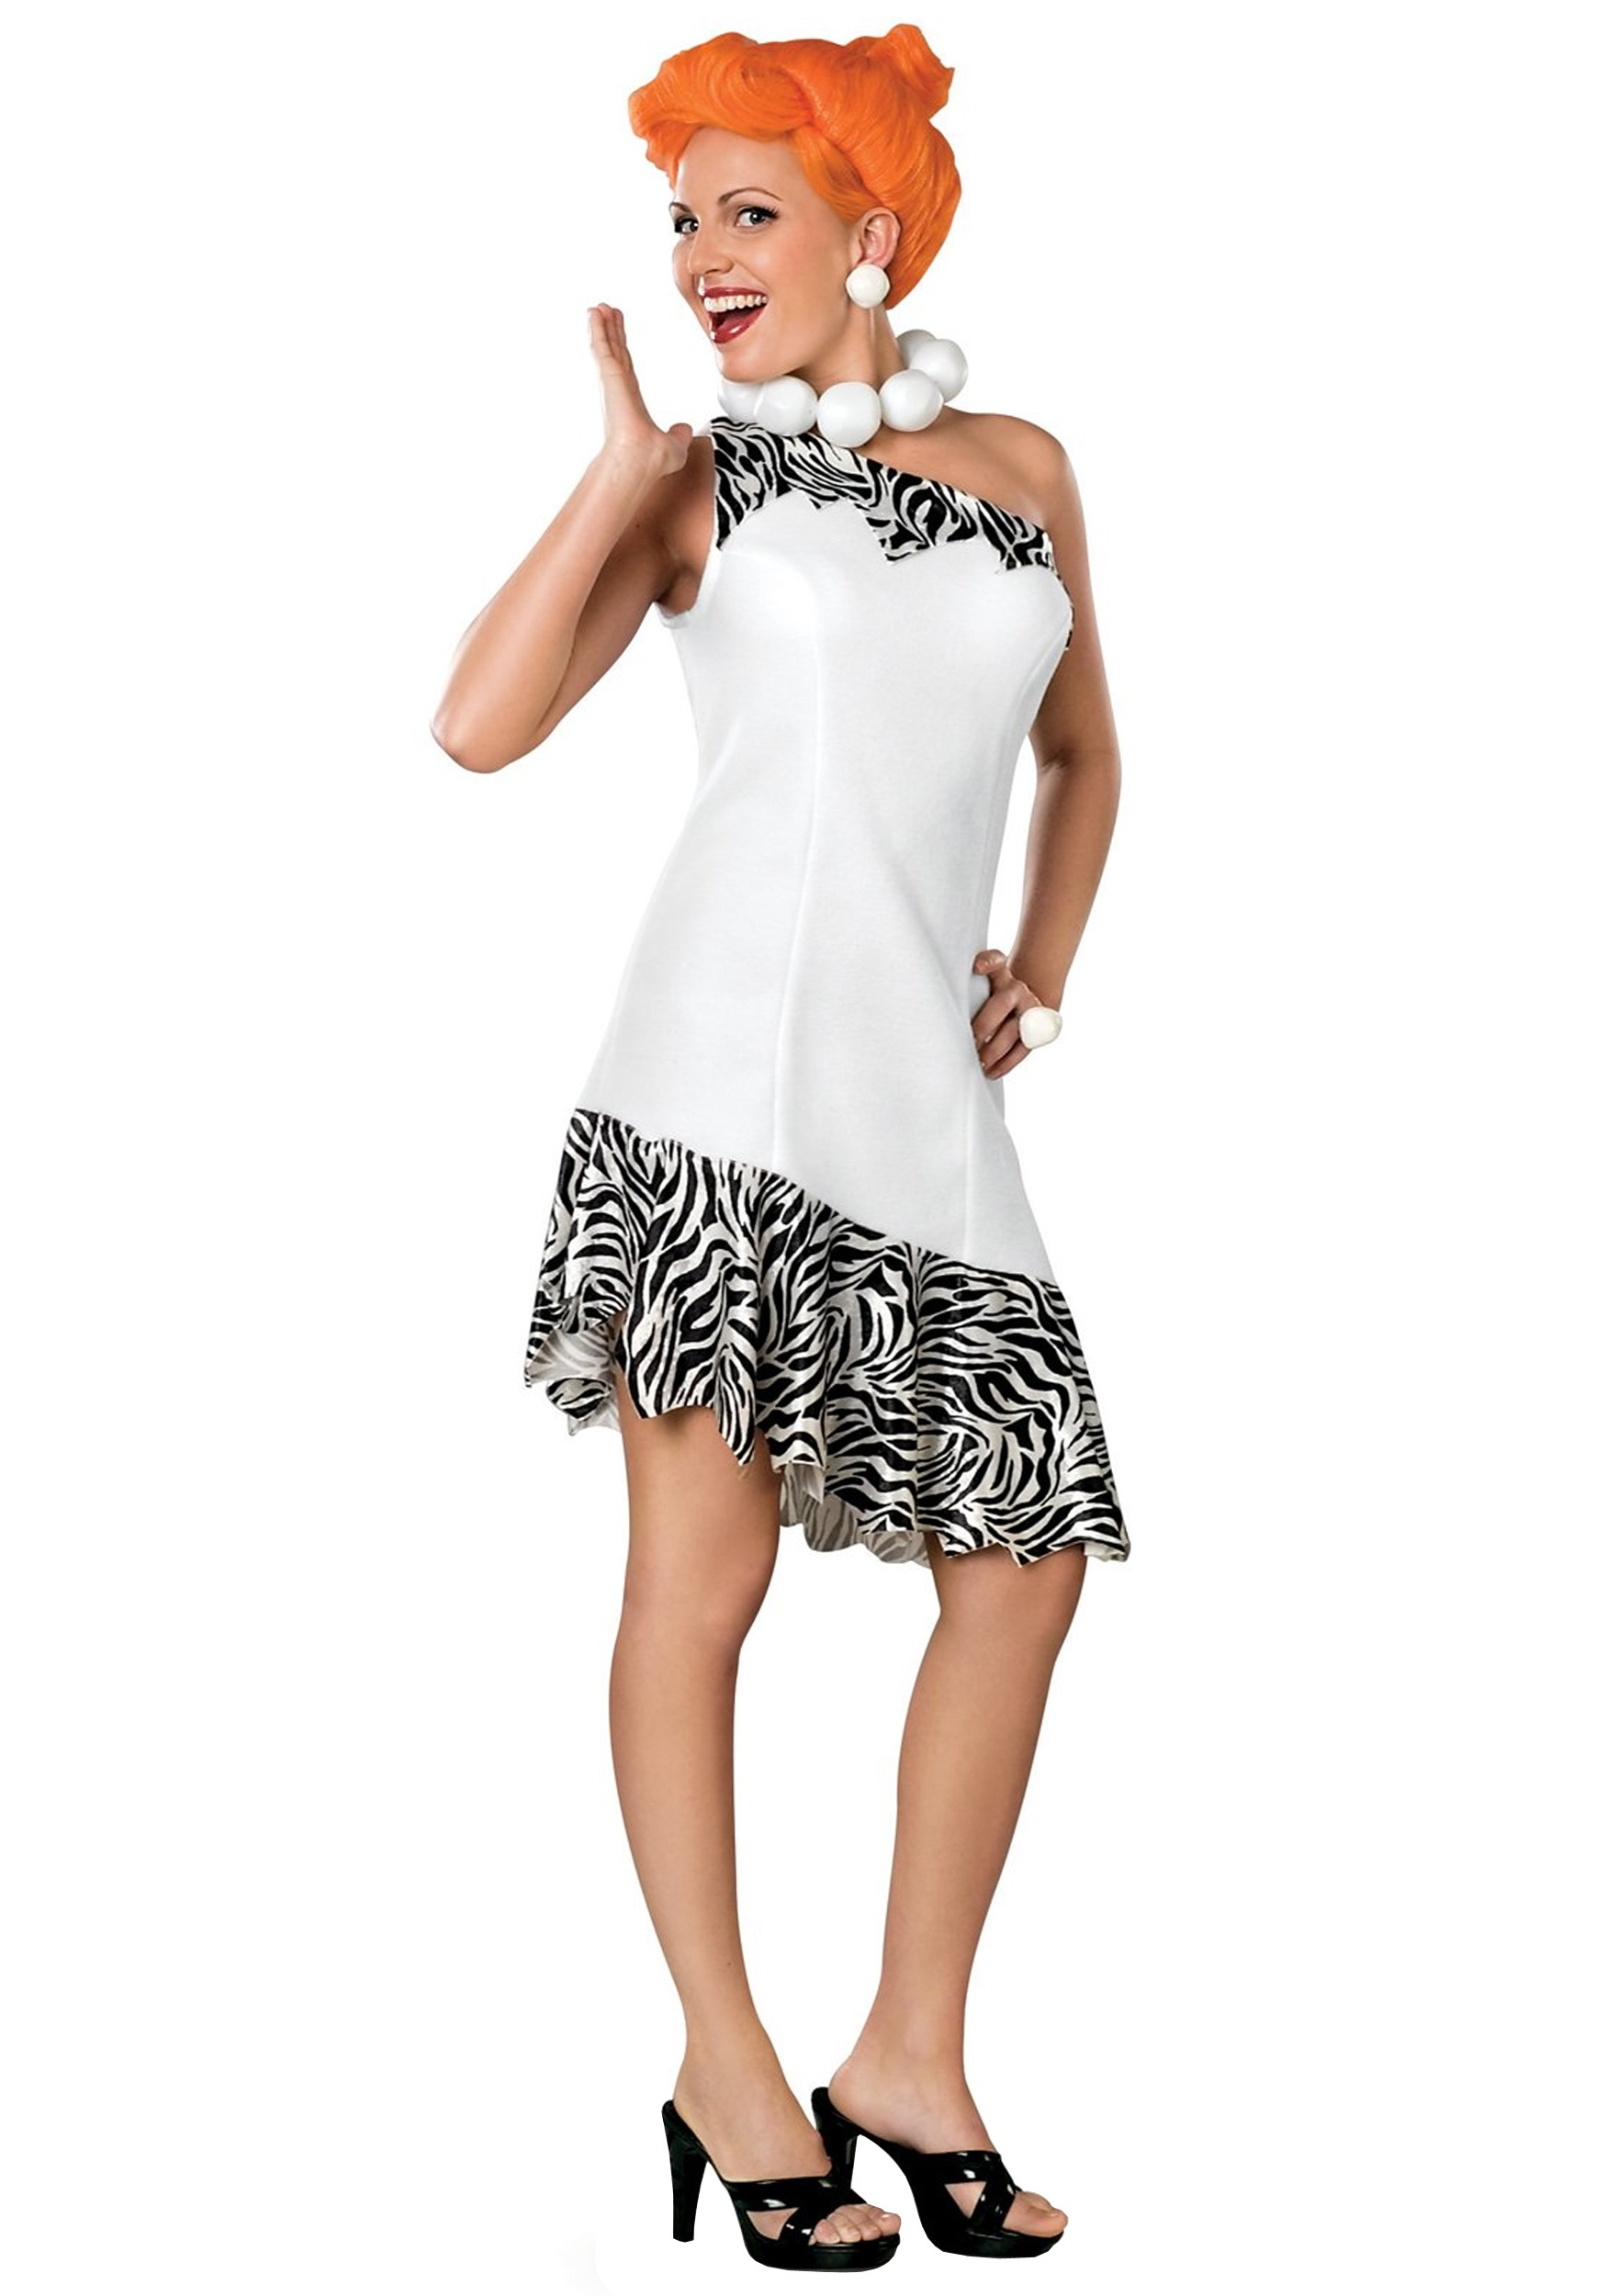 Wilma costumes for teens